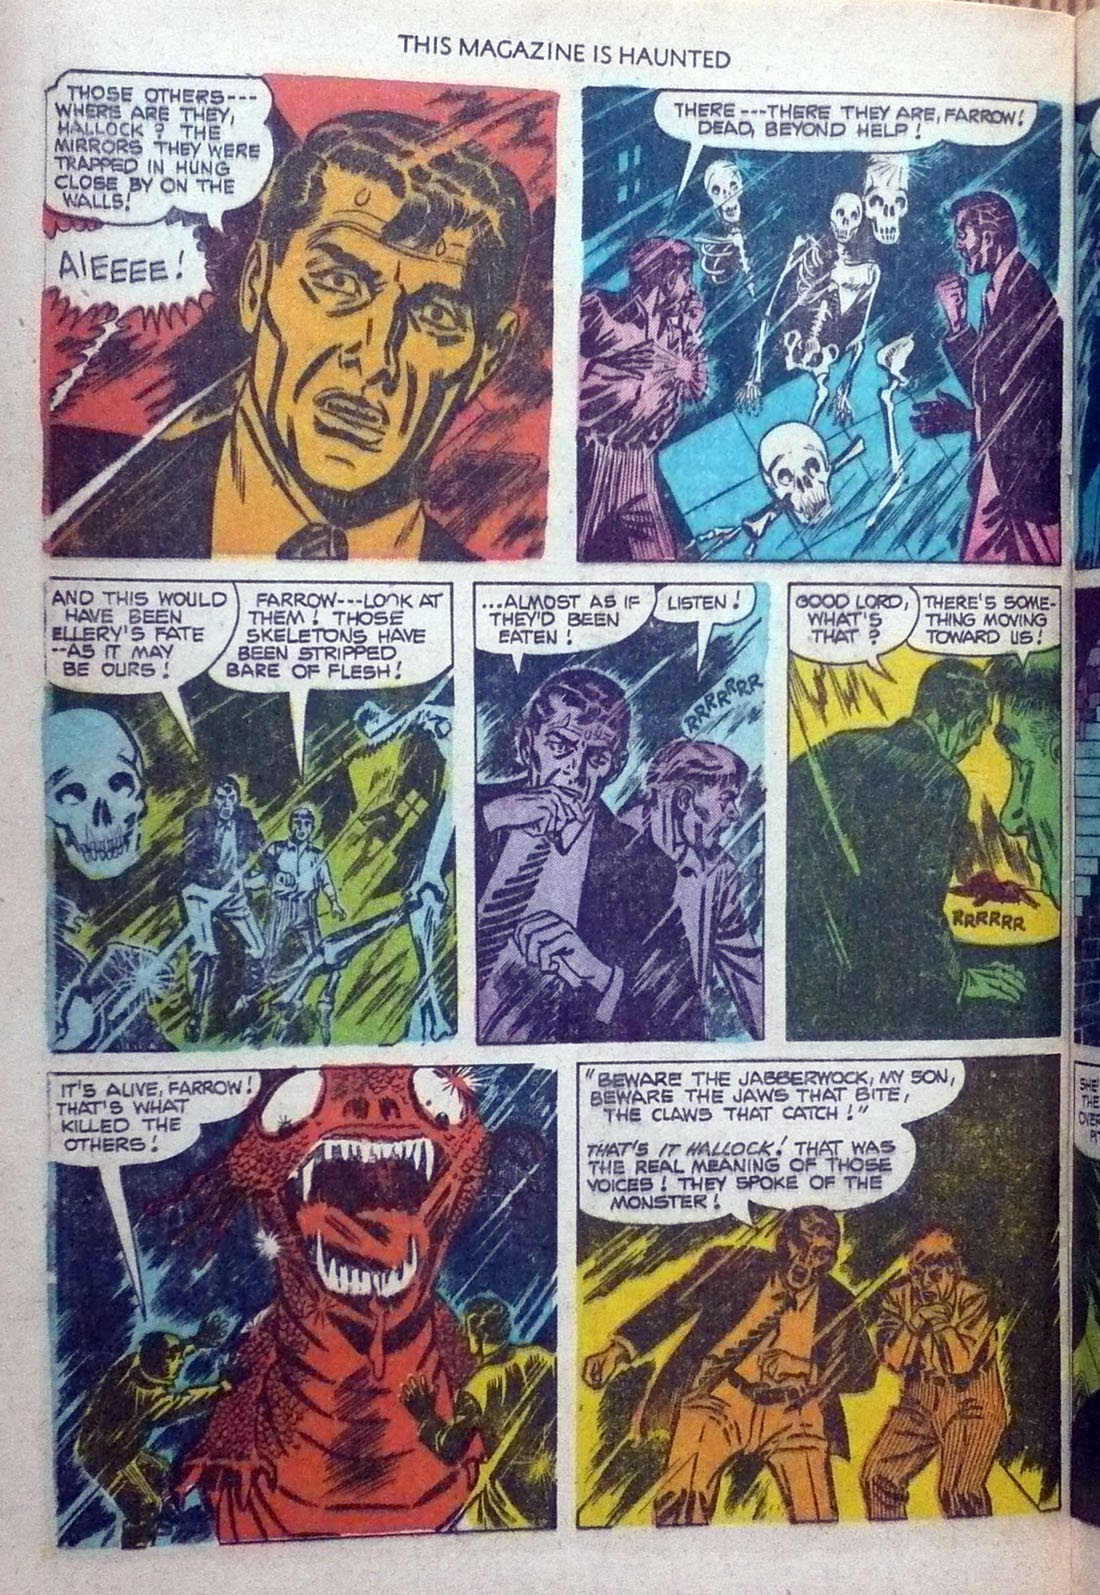 Read online This Magazine Is Haunted comic -  Issue #3 - 20